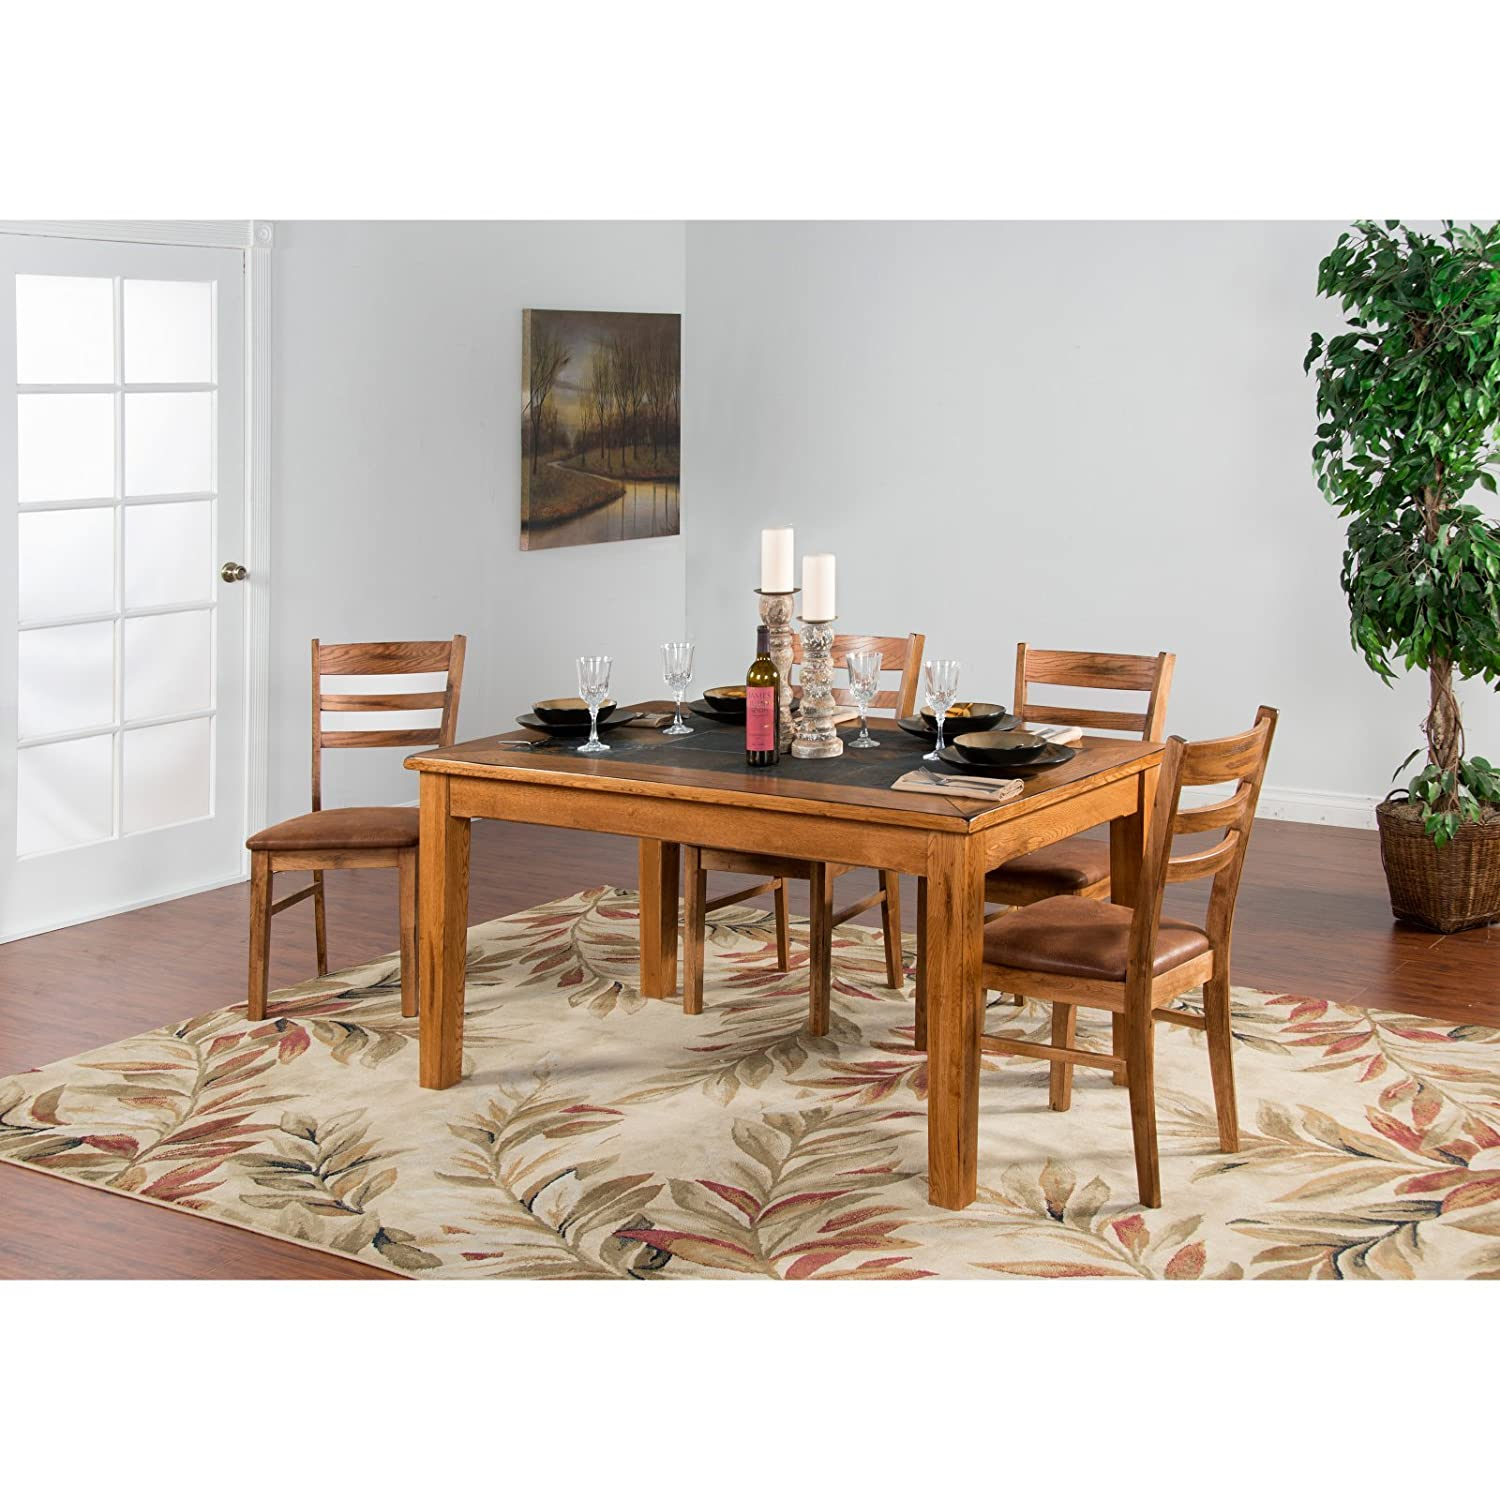 Amazon Com Sunny Designs Sedona Slate Dining Table In Rustic